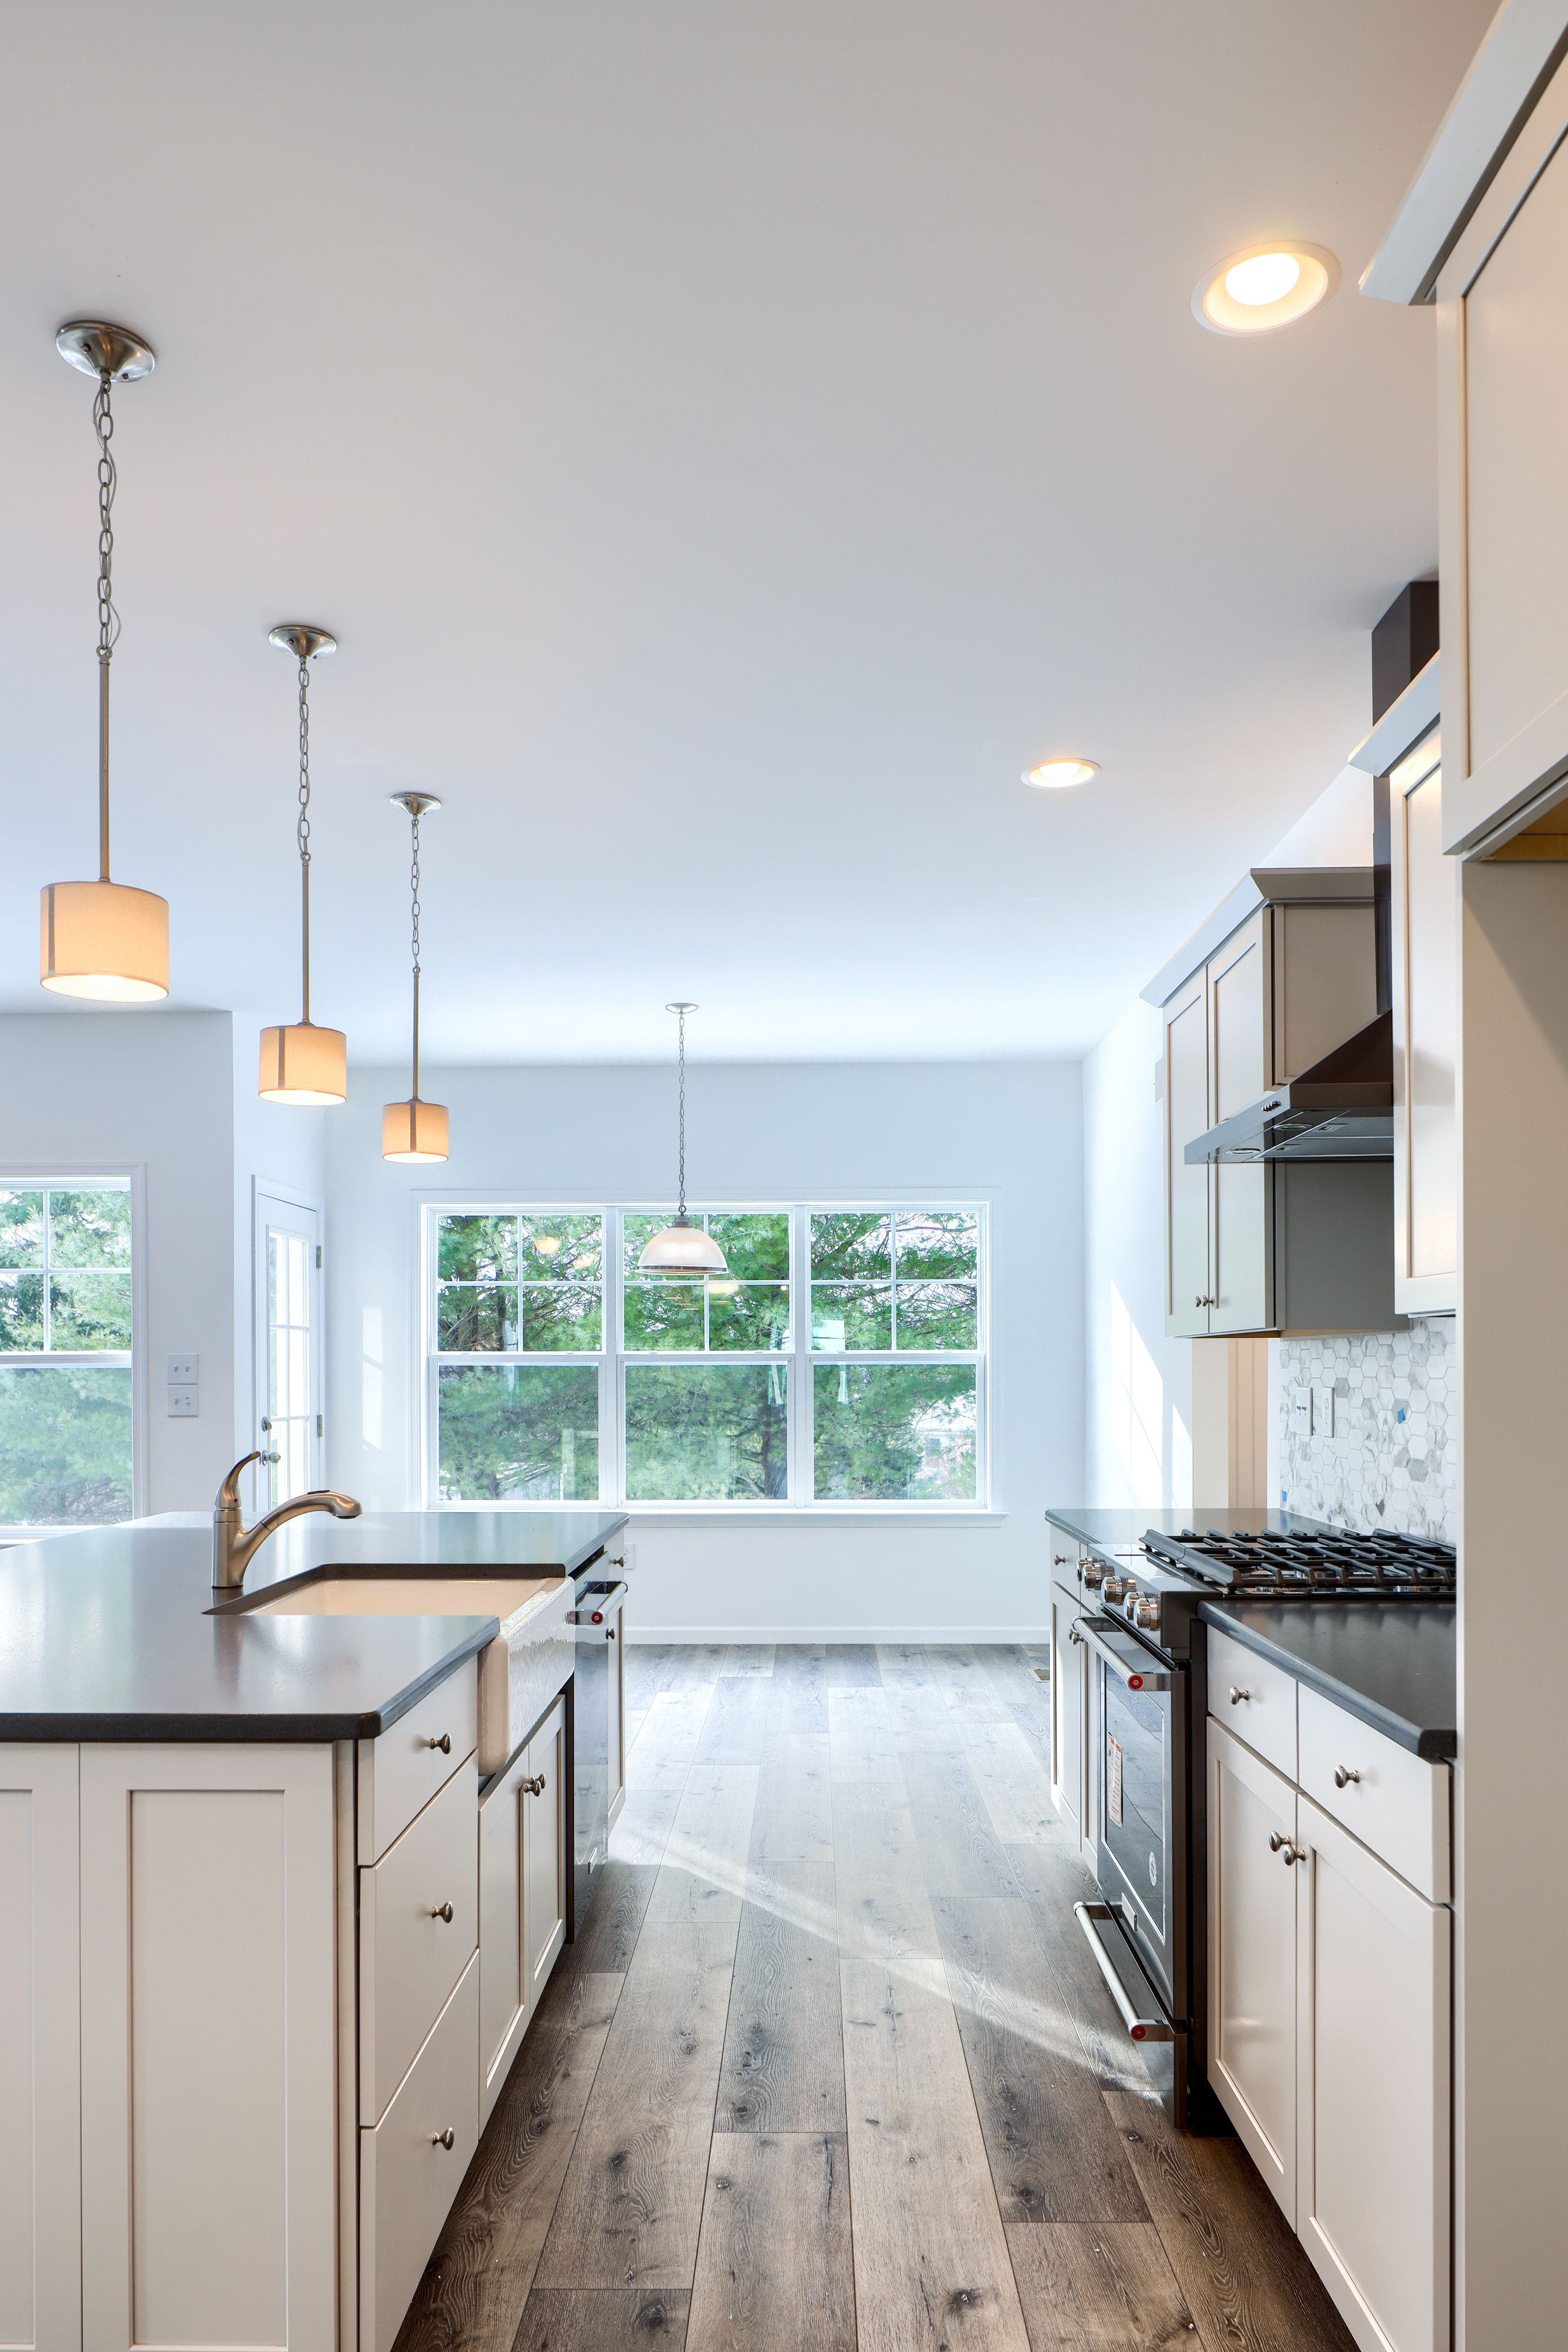 Kitchen featured in the Addison Vintage By Keystone Custom Homes in York, PA